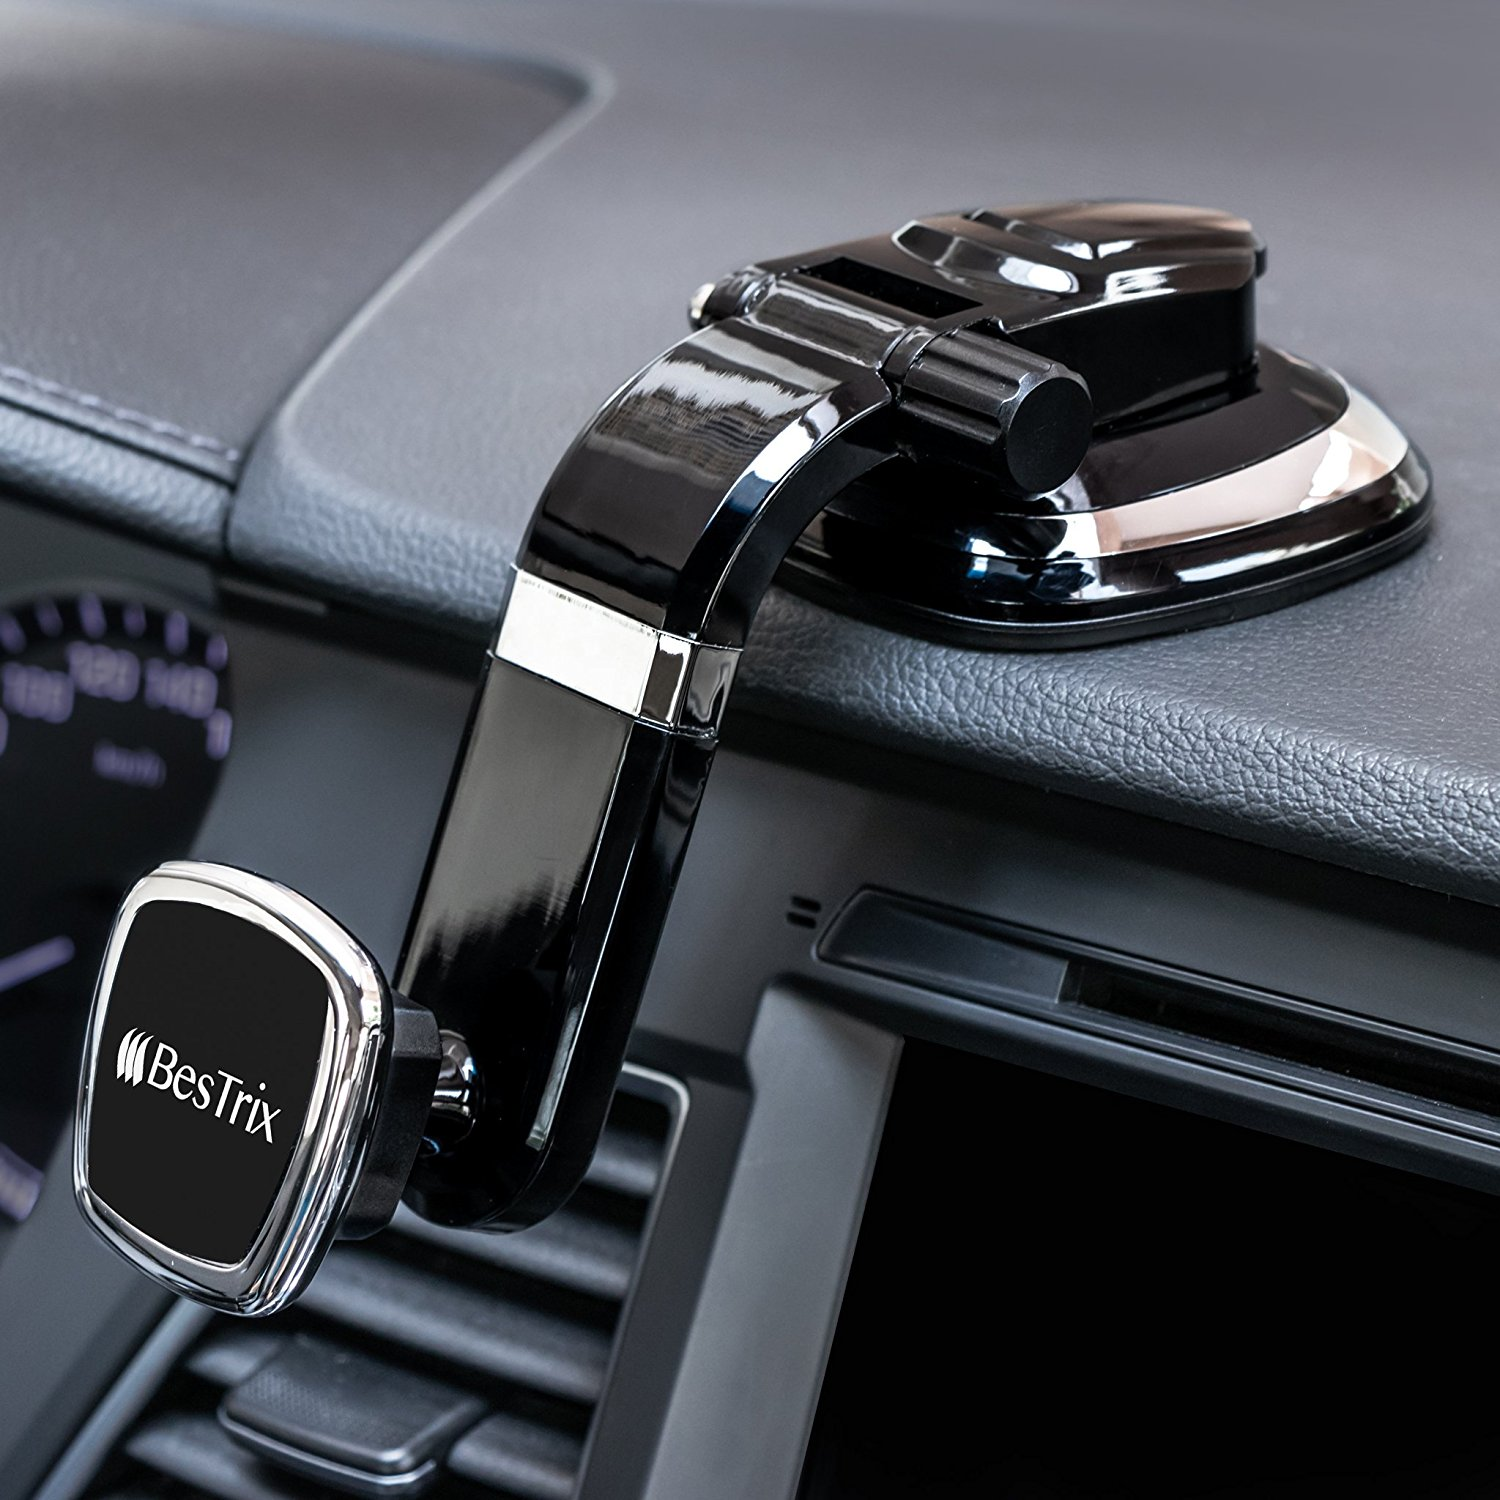 The 10 Best Magnetic Car Mounts to Buy 2019 - Auto Quarterly